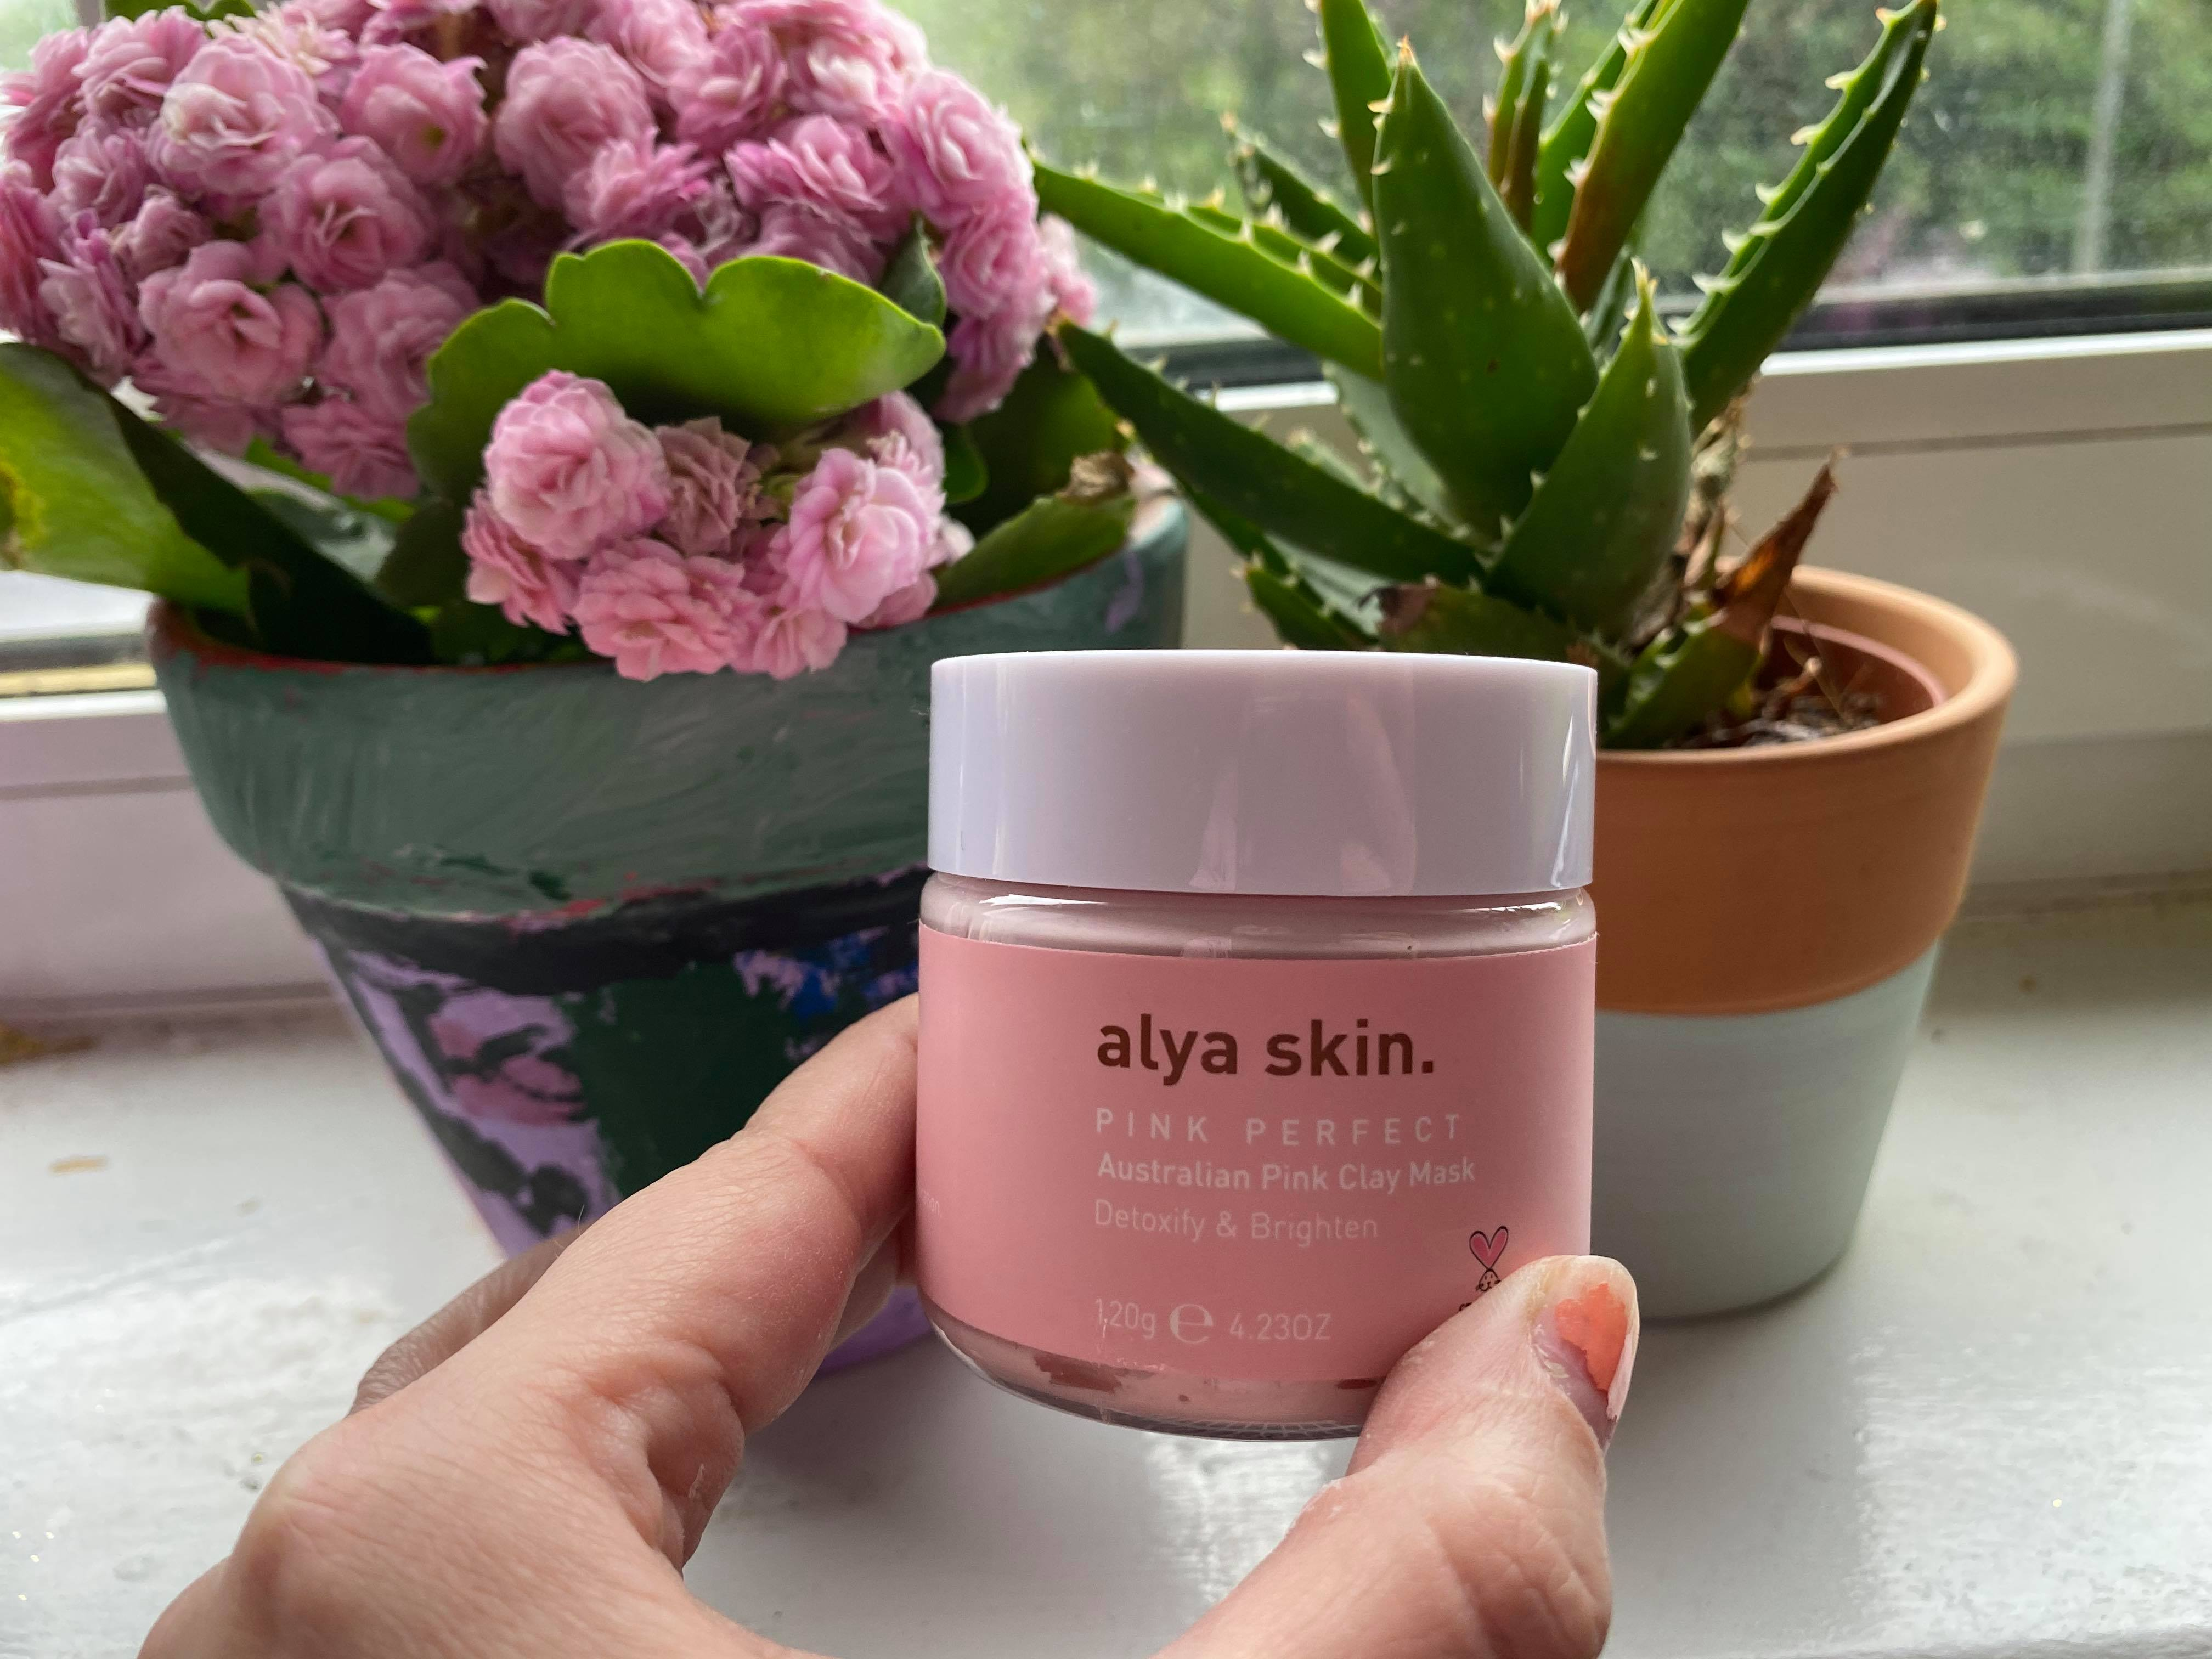 Alya Skin Pink Clay Mask Review